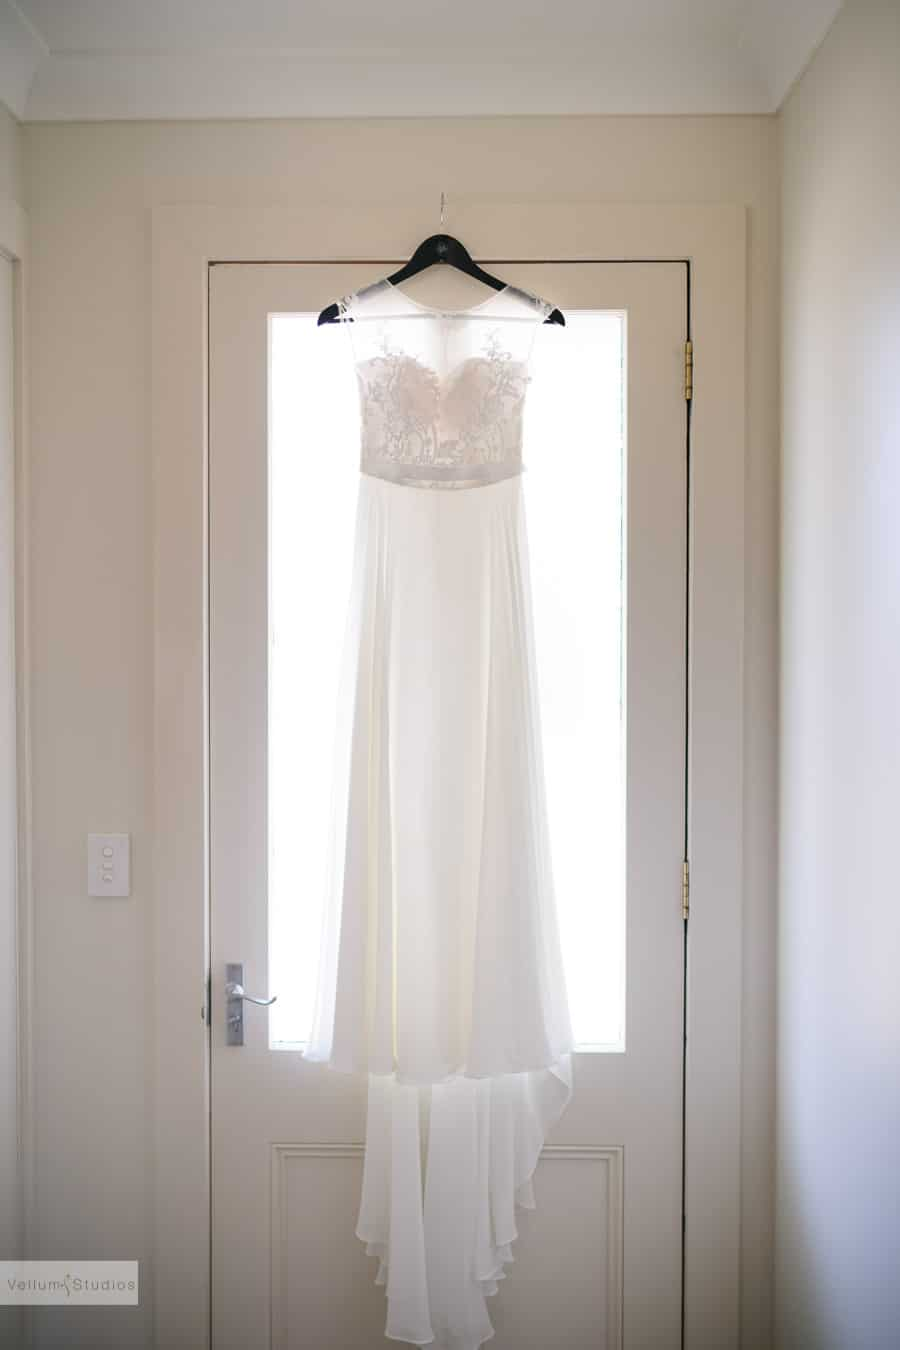 Spicers_Hidden_Vale_Wedding - dress